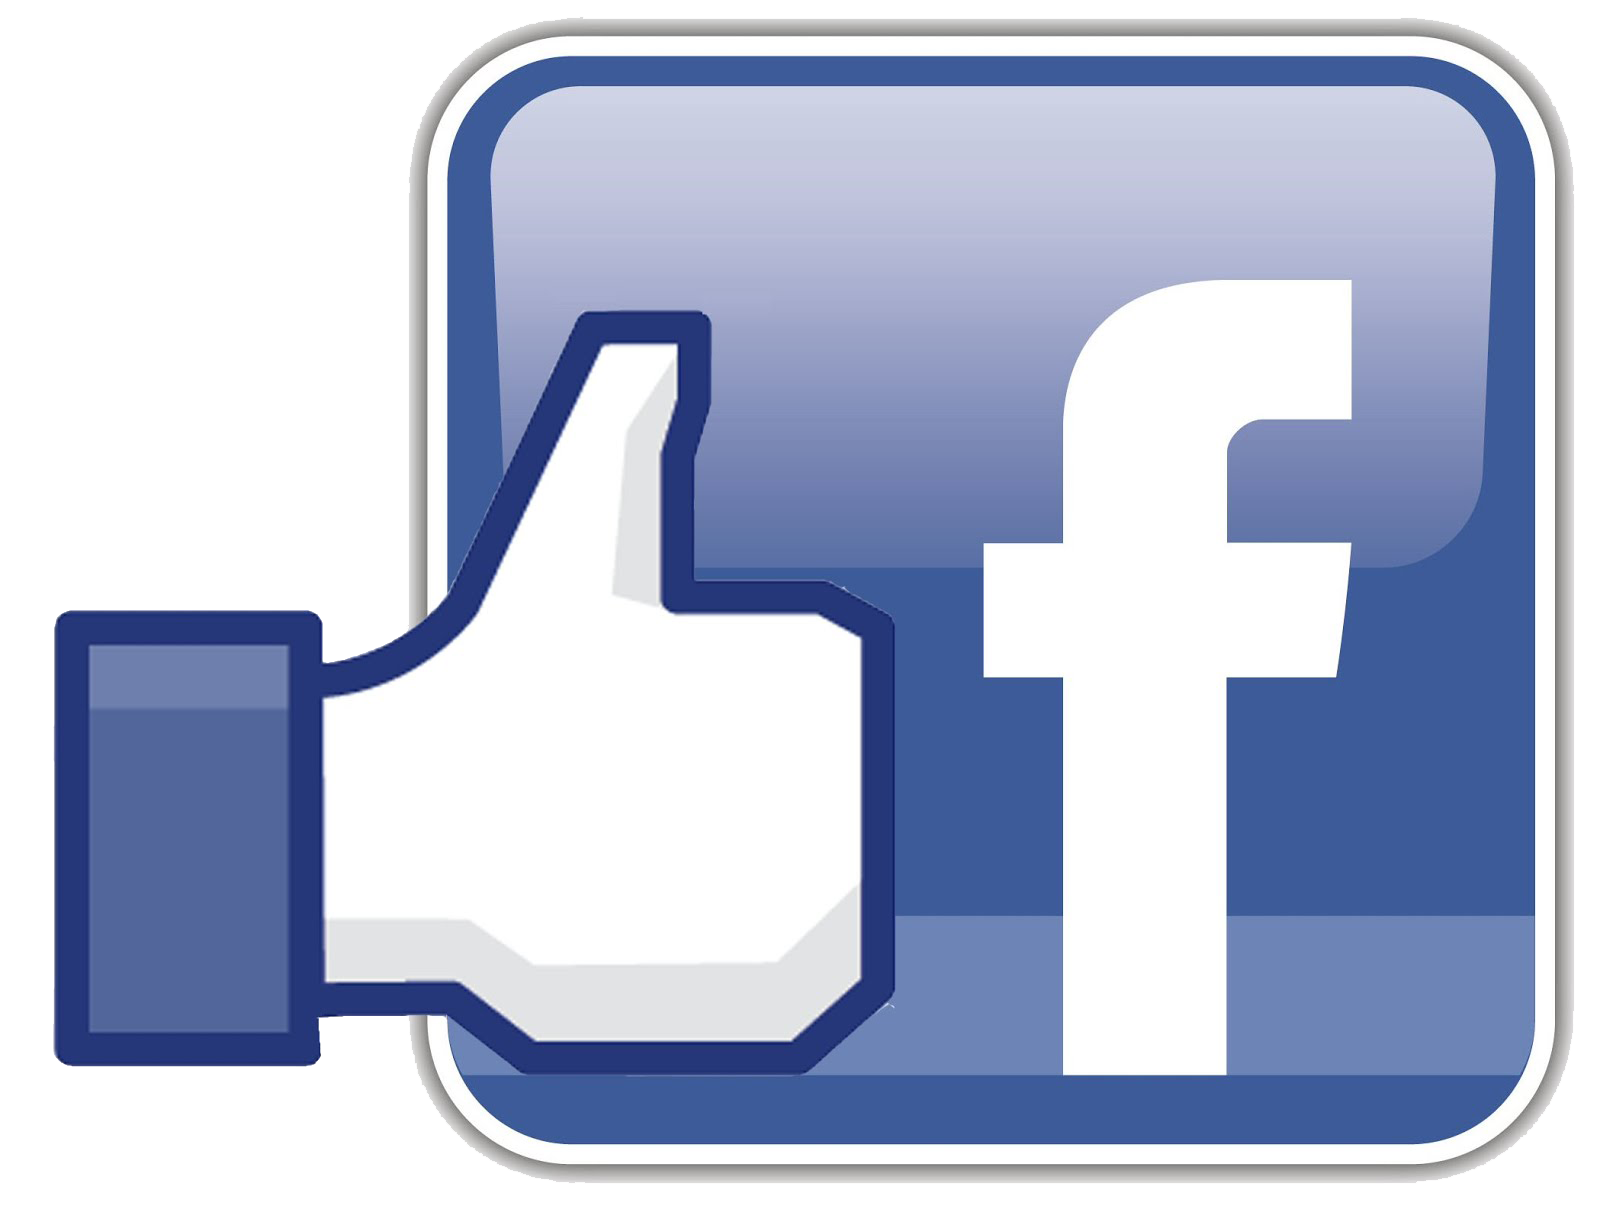 Facebook Basics - Moberly @ Moberly Public Library